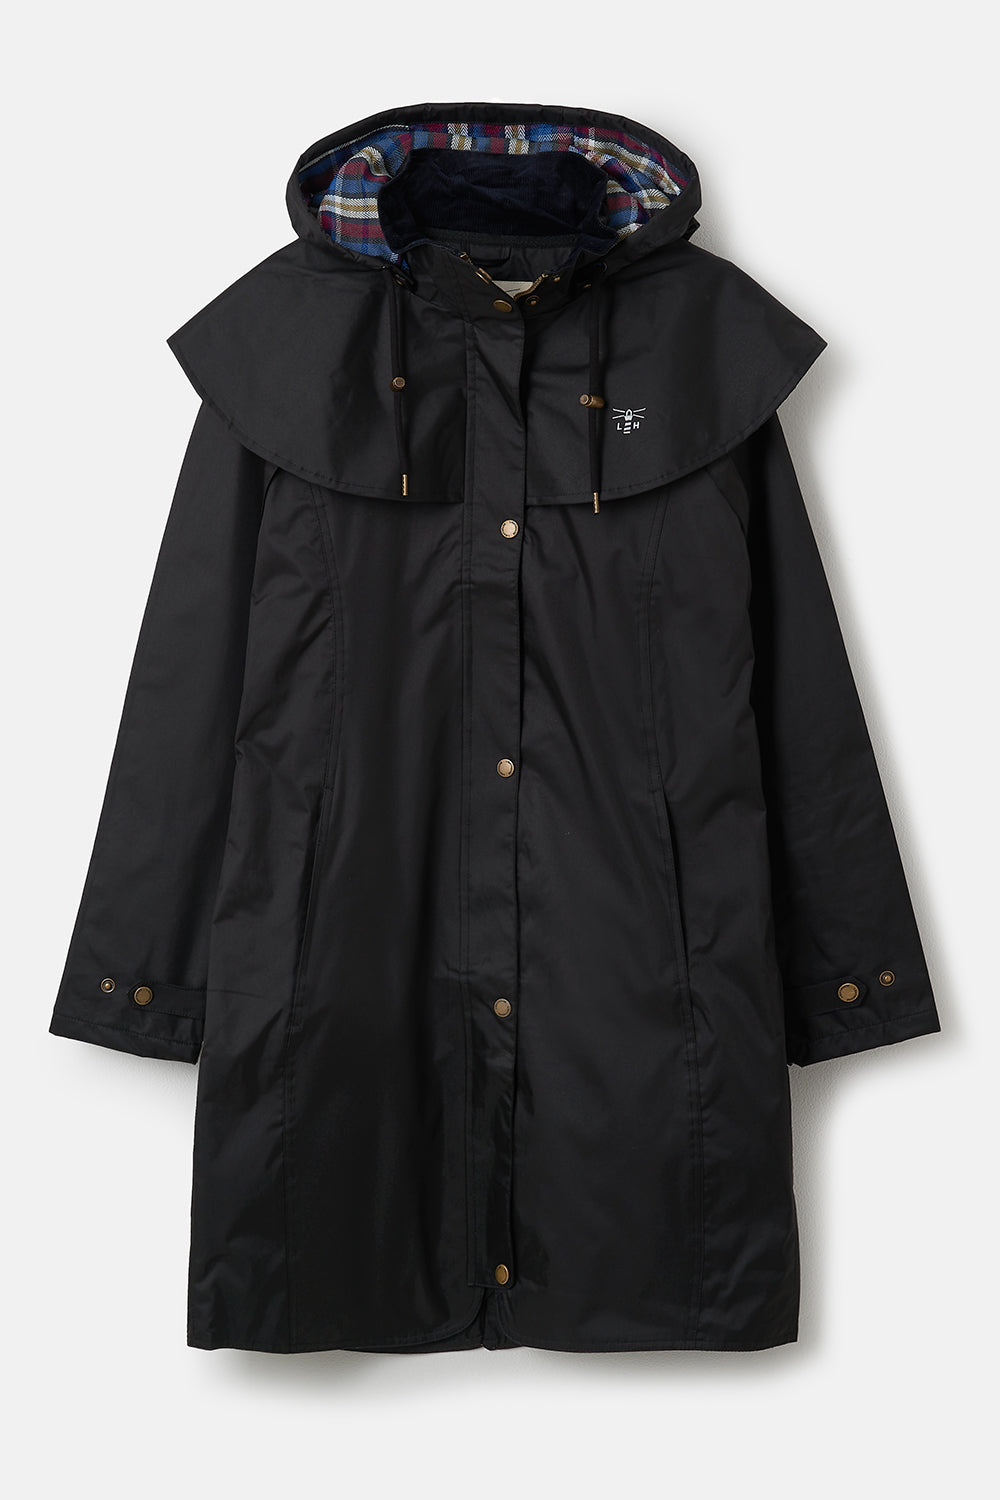 Outrider 3/4 Length Waterproof Raincoat - Black